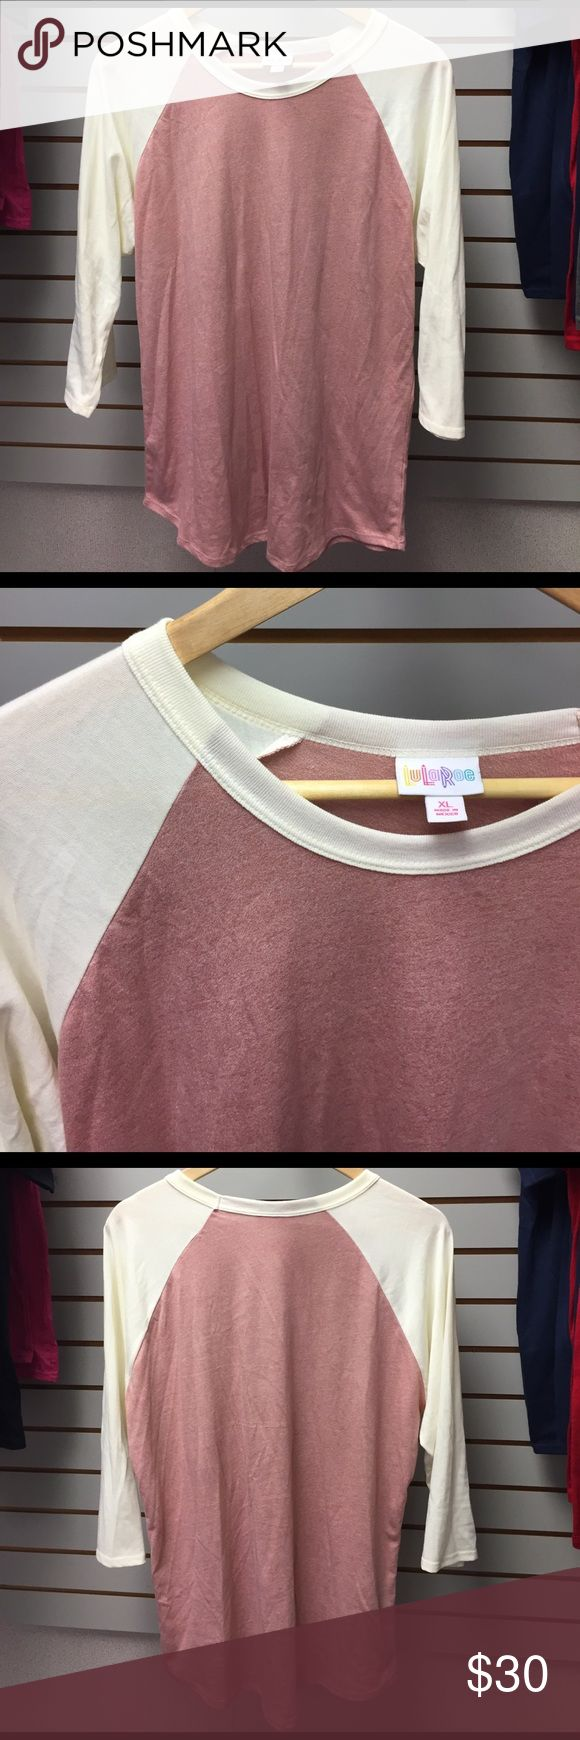 "Lularoe brick red & cream Randy shirt XL Lularoe brick red & cream Randy 3/4 sleeve baseball tee shirt, very gently worn once, no rips holes or stains, women's size XL measures 46"" bust, 42"" waist, approx 29"" total length. 50% cotton 50% polyester. Super soft material with medium stretch. LuLaRoe Tops Tees - Long Sleeve"